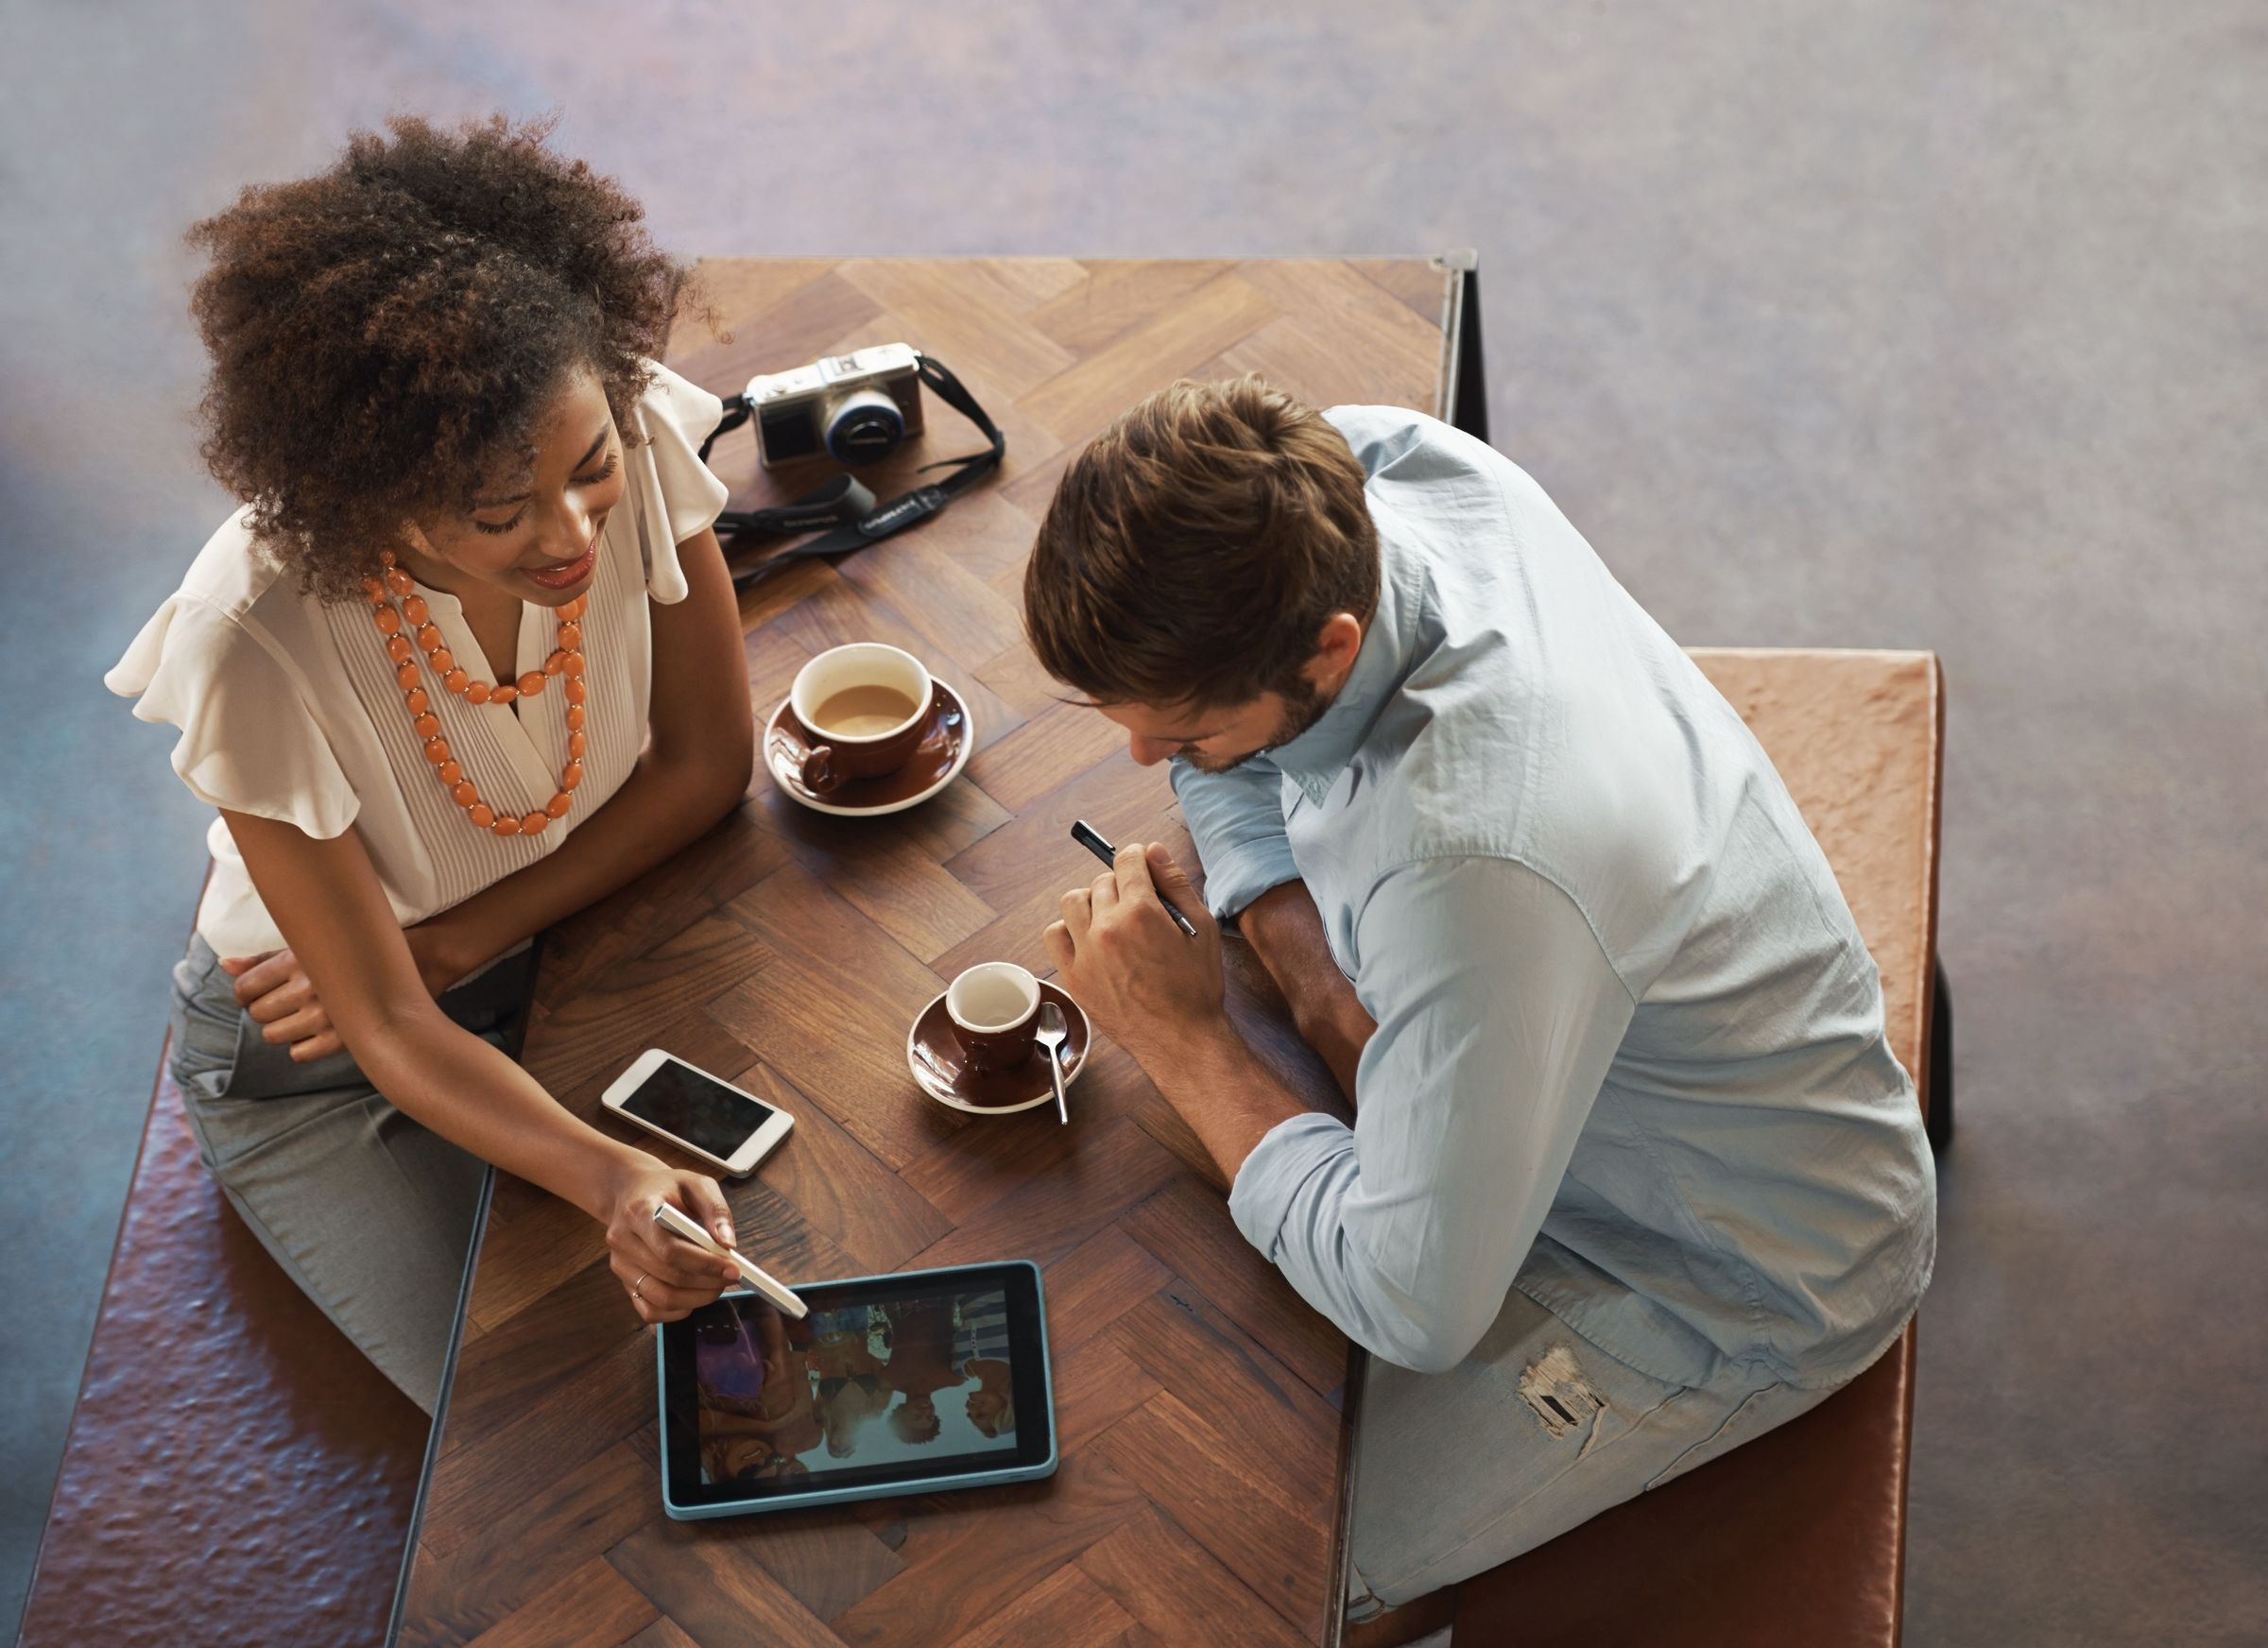 man and woman sitting at a table looking at an iPad